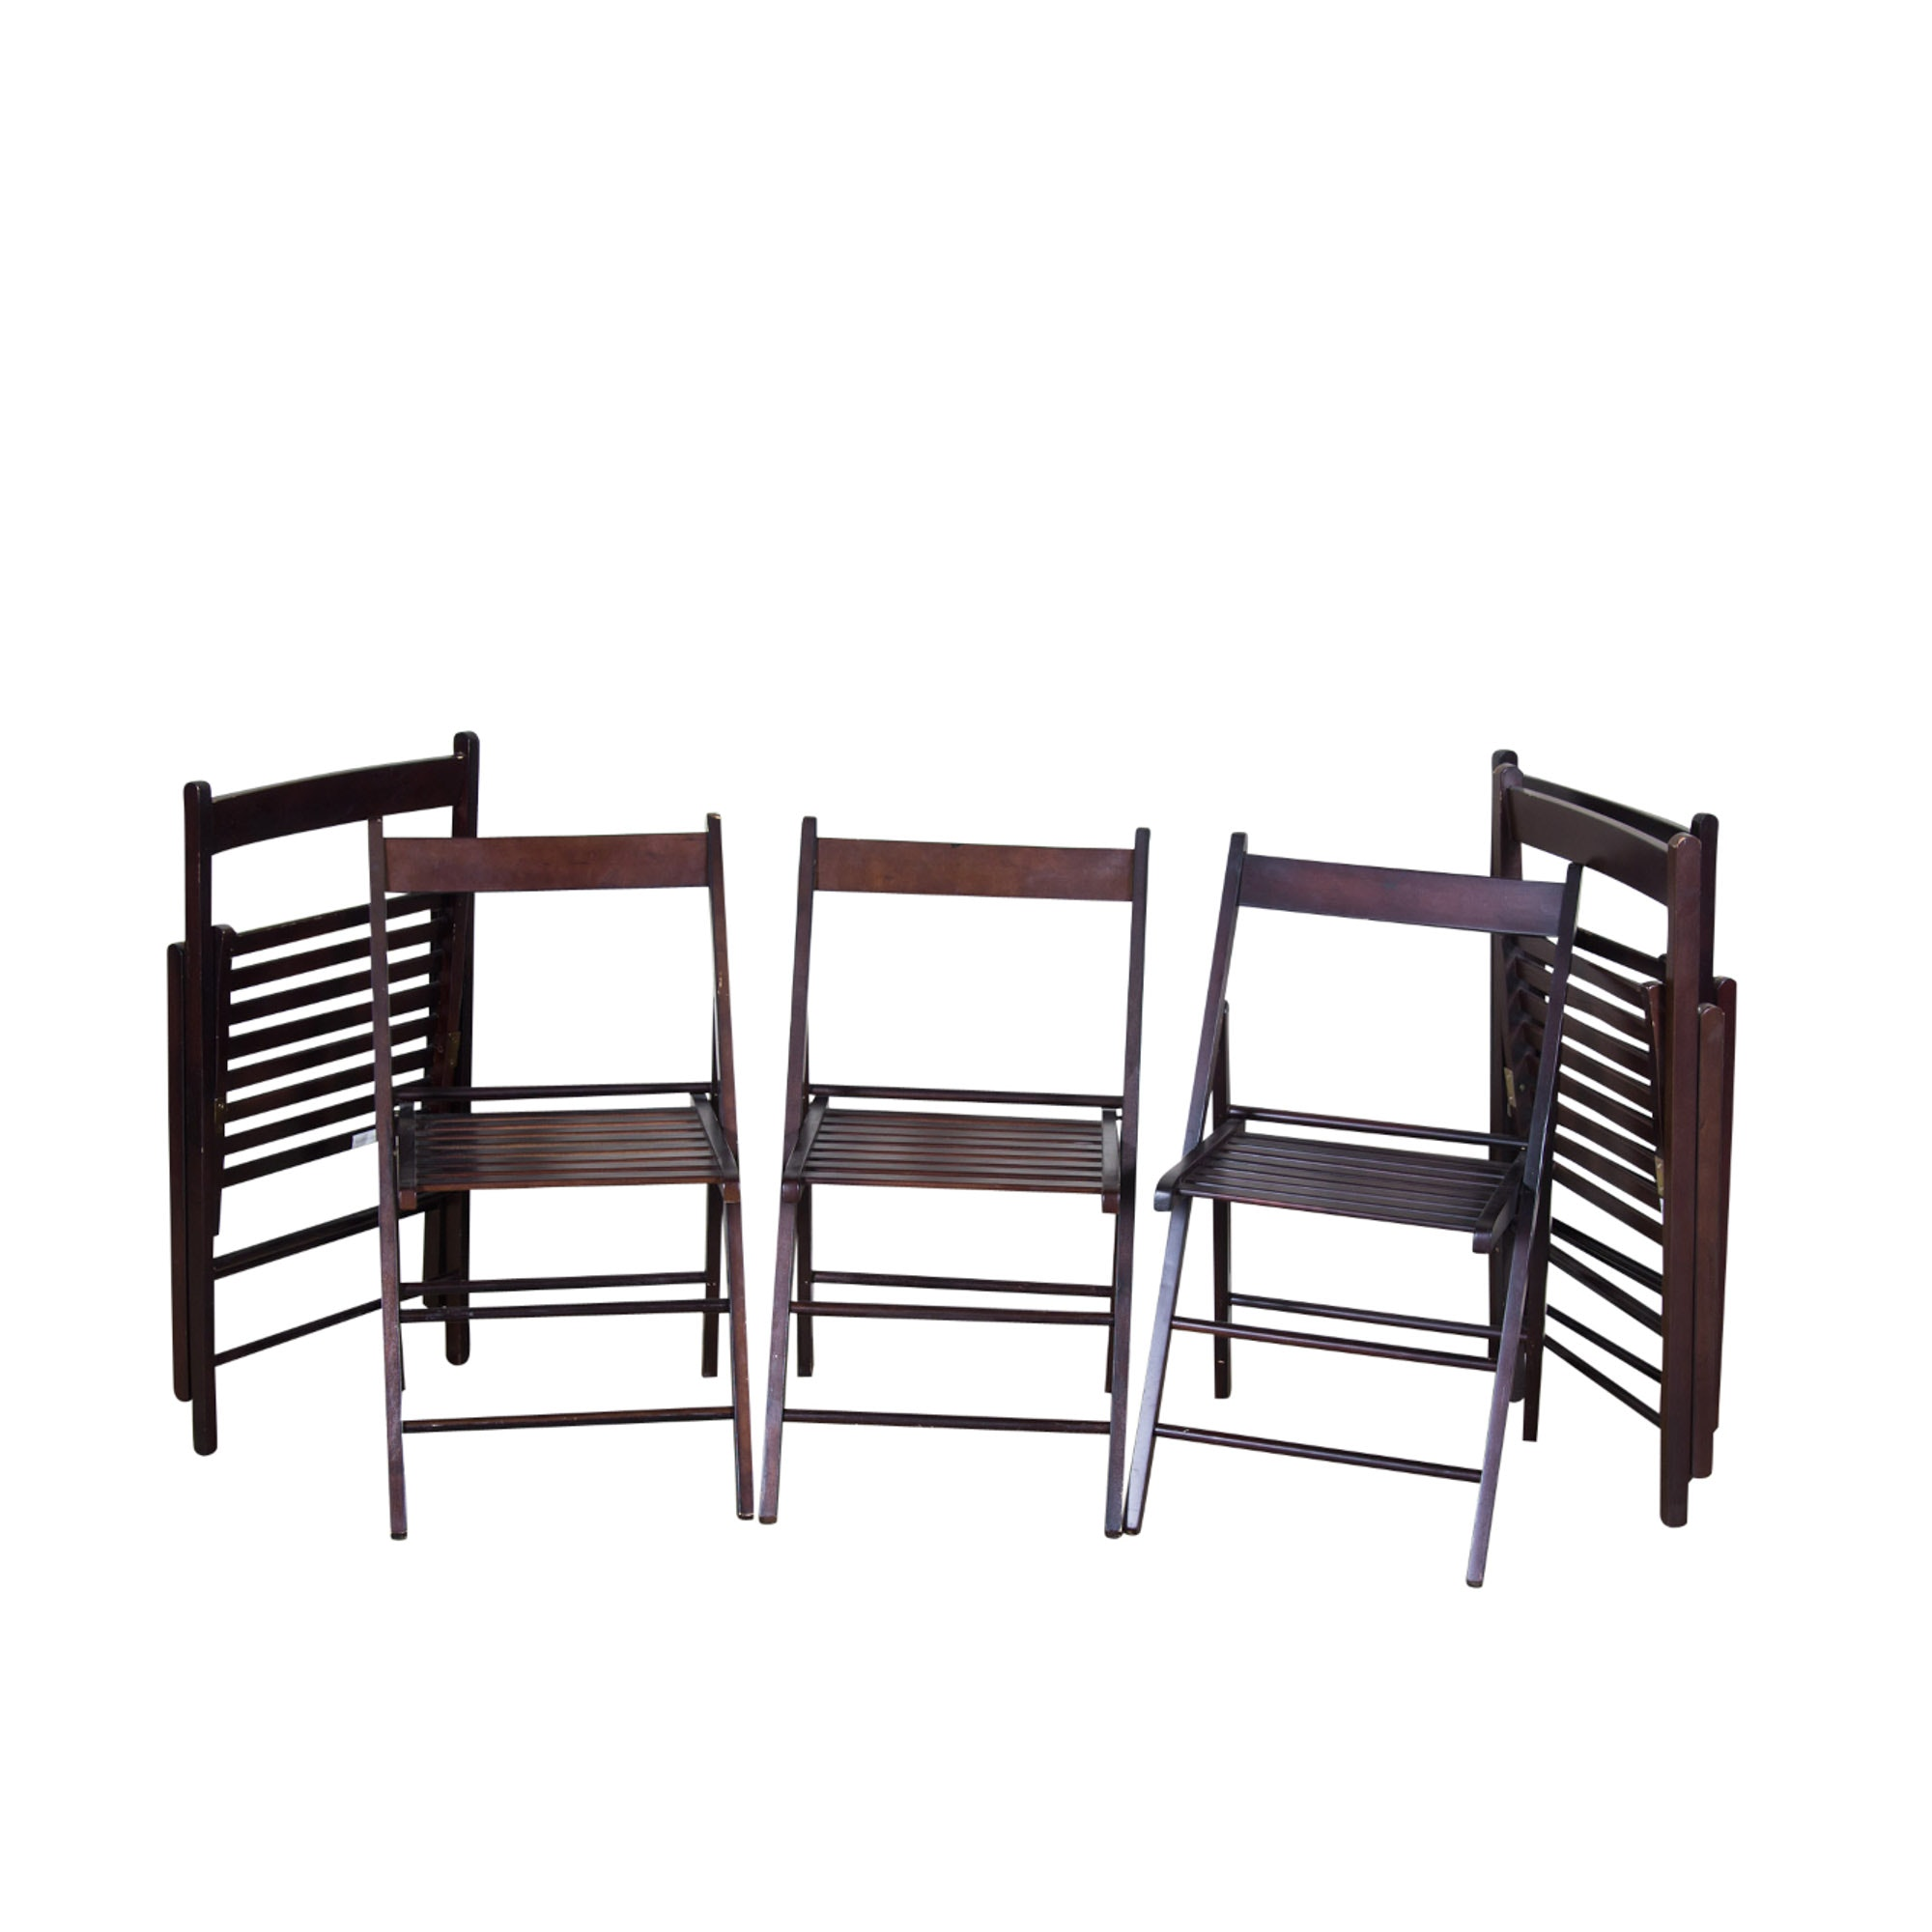 Six Slatted Wooden Folding Chairs